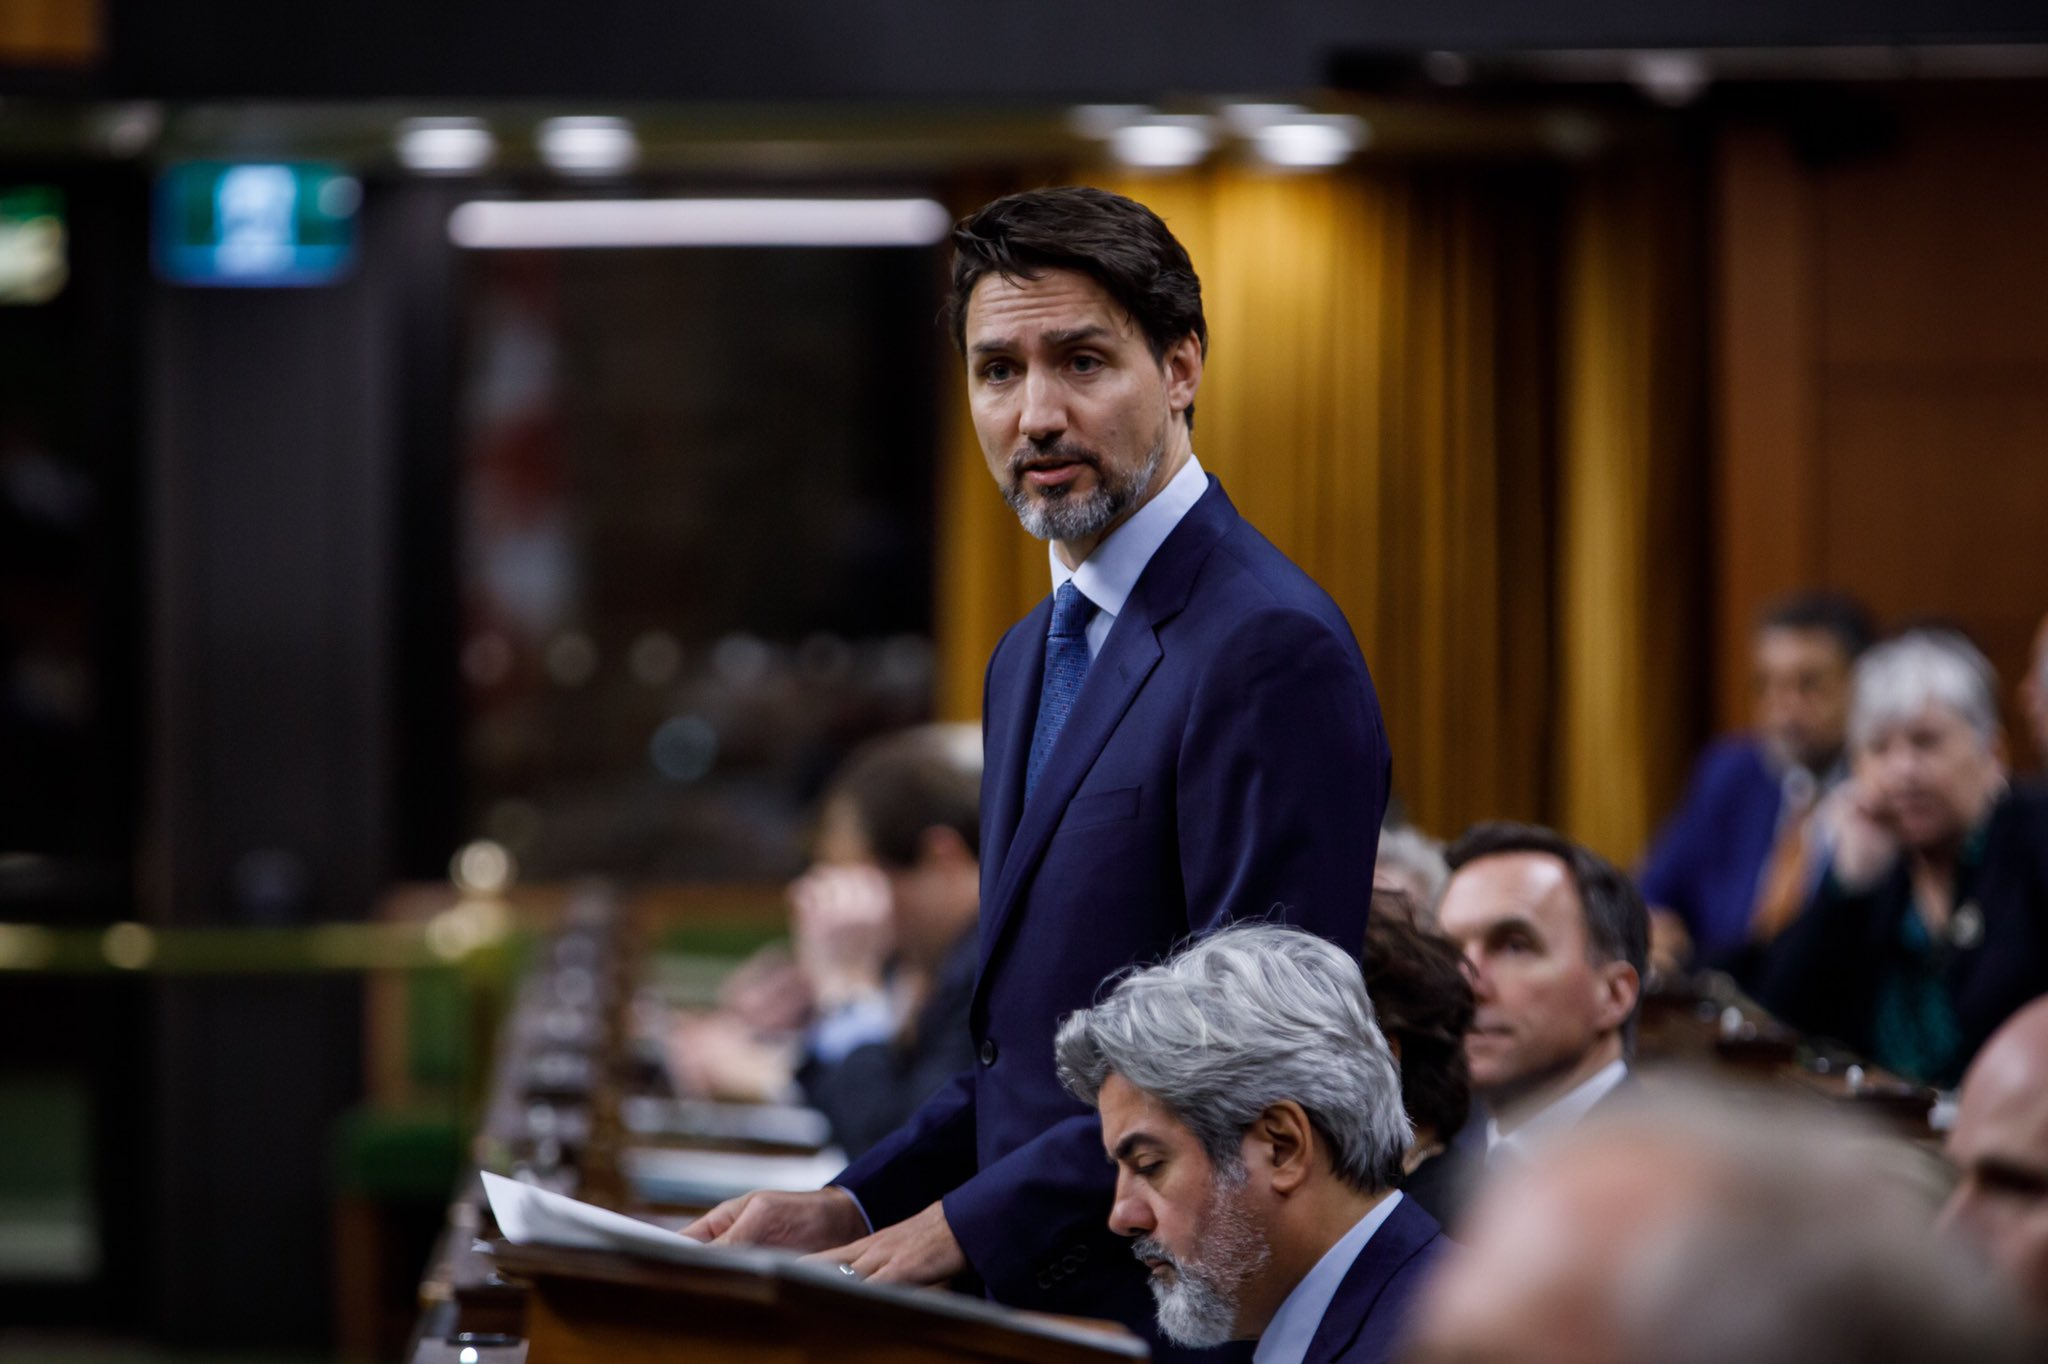 Trudeau's record-high spending hasn't translated into strong economic growth